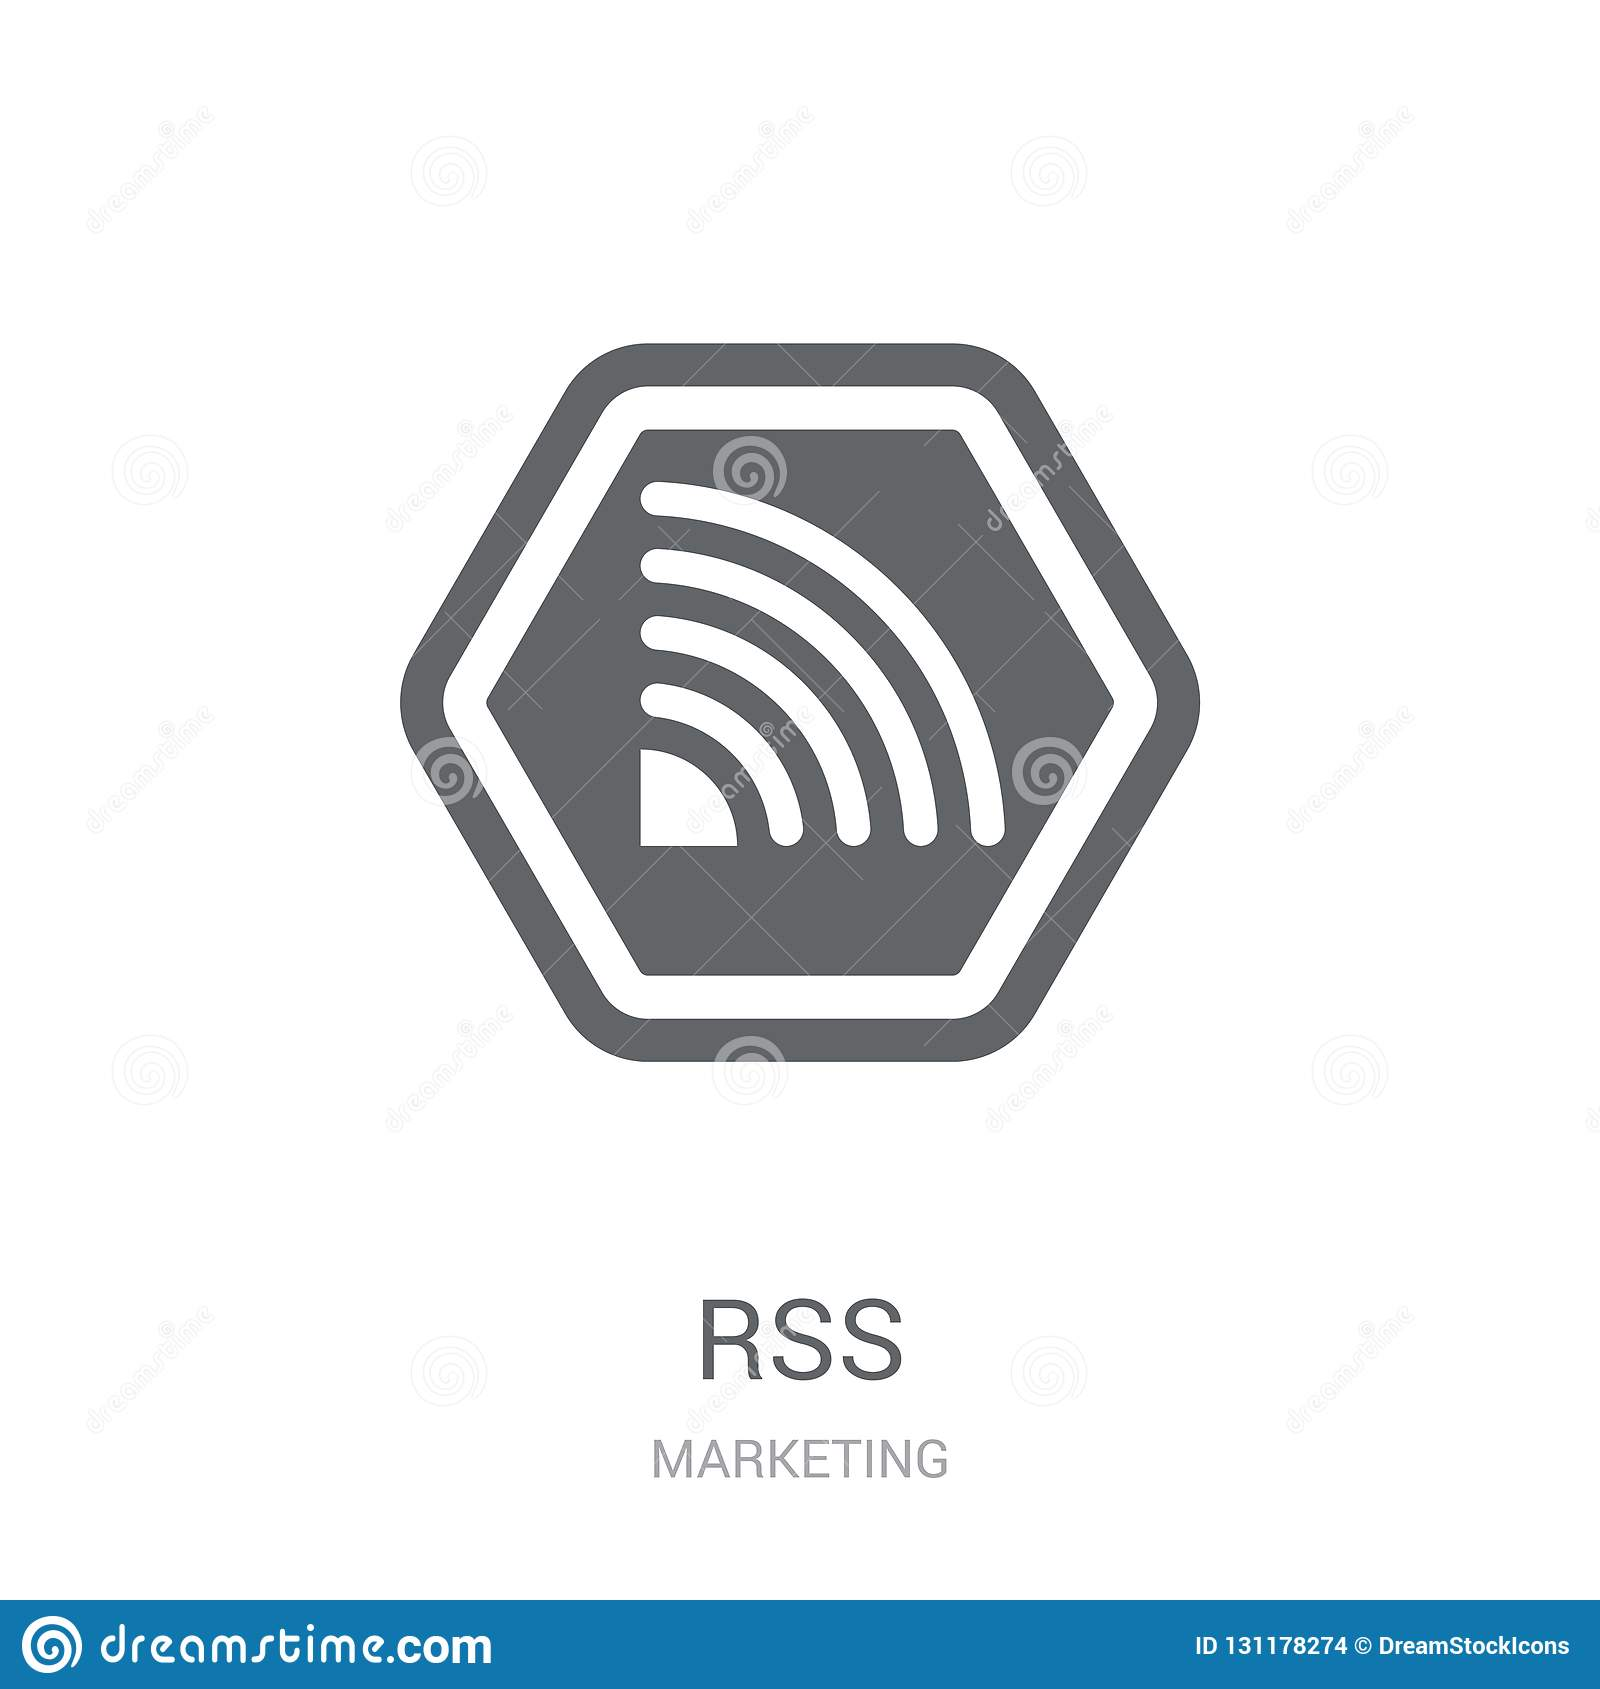 Rss icon. Trendy Rss logo concept on white background from Marketing collection